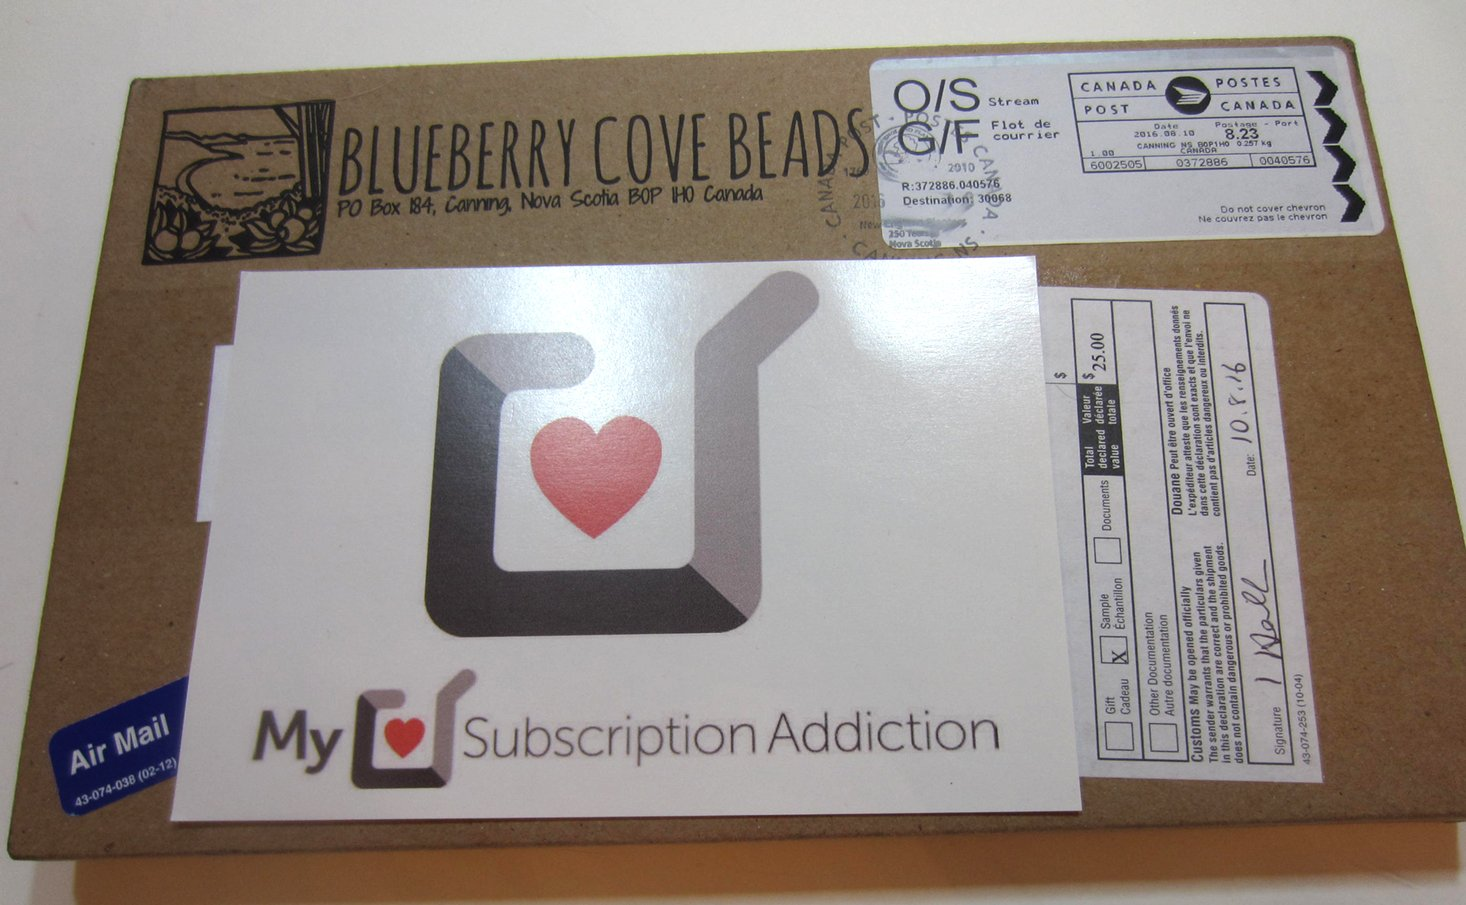 blueberrycovebeads-august-2016-box